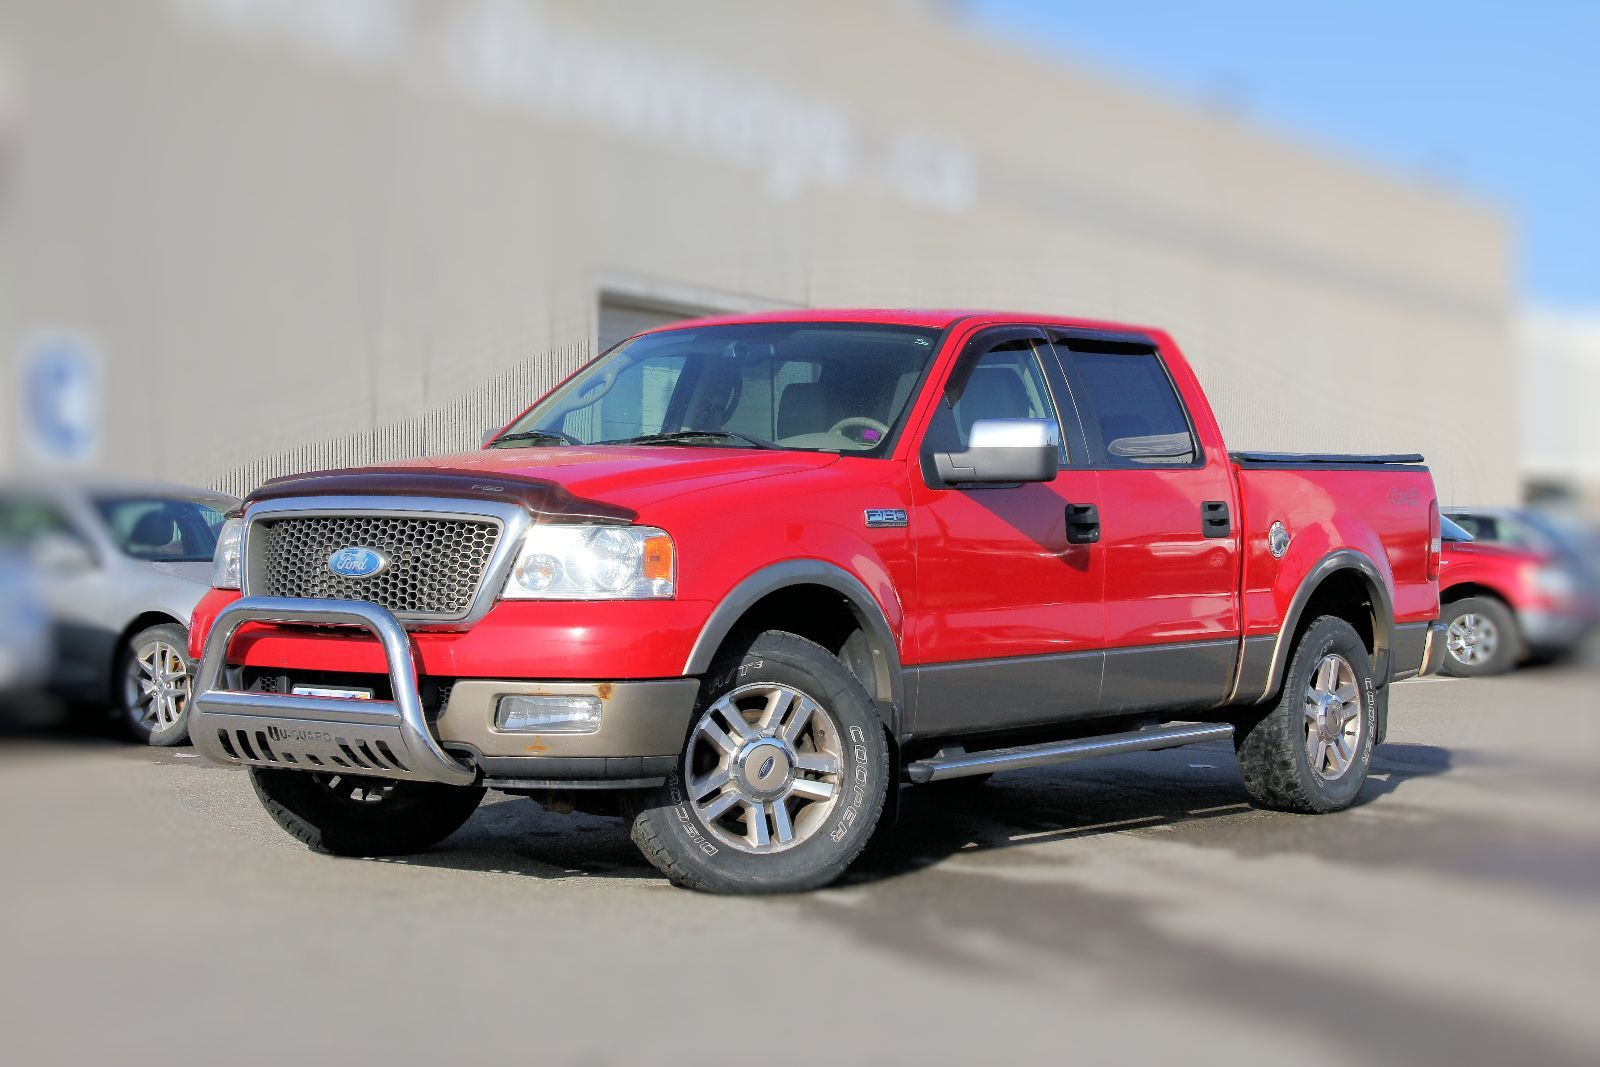 used 2005 ford f150 lariat in saint john used inventory downey ford in saint john new brunswick. Black Bedroom Furniture Sets. Home Design Ideas